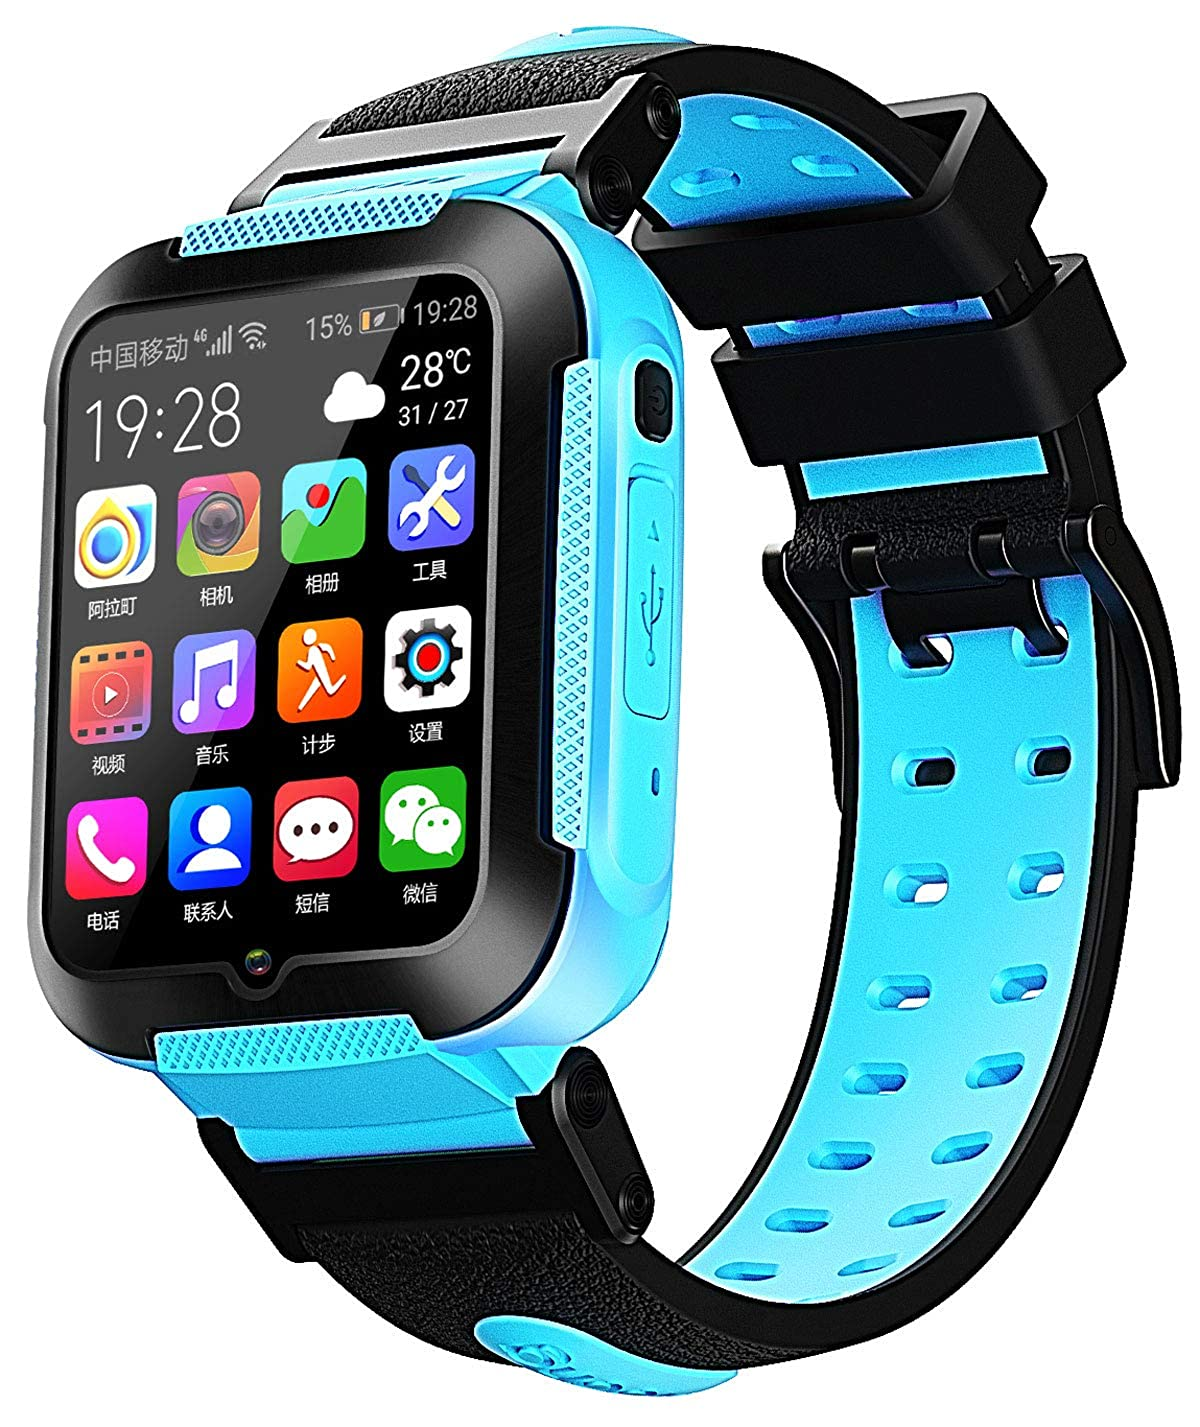 Amazon.com: Kids Smart Watch GPS 4G Network WiFi Voice Call ...